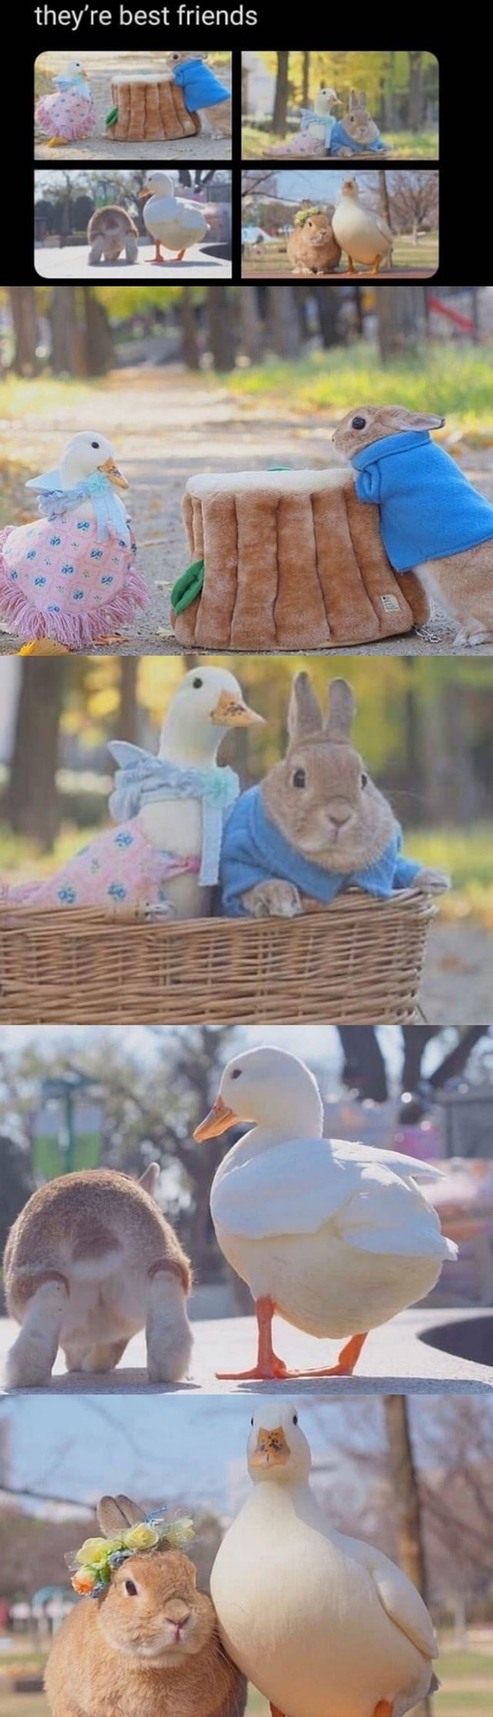 bugs bunny and daffy duck irl - meme